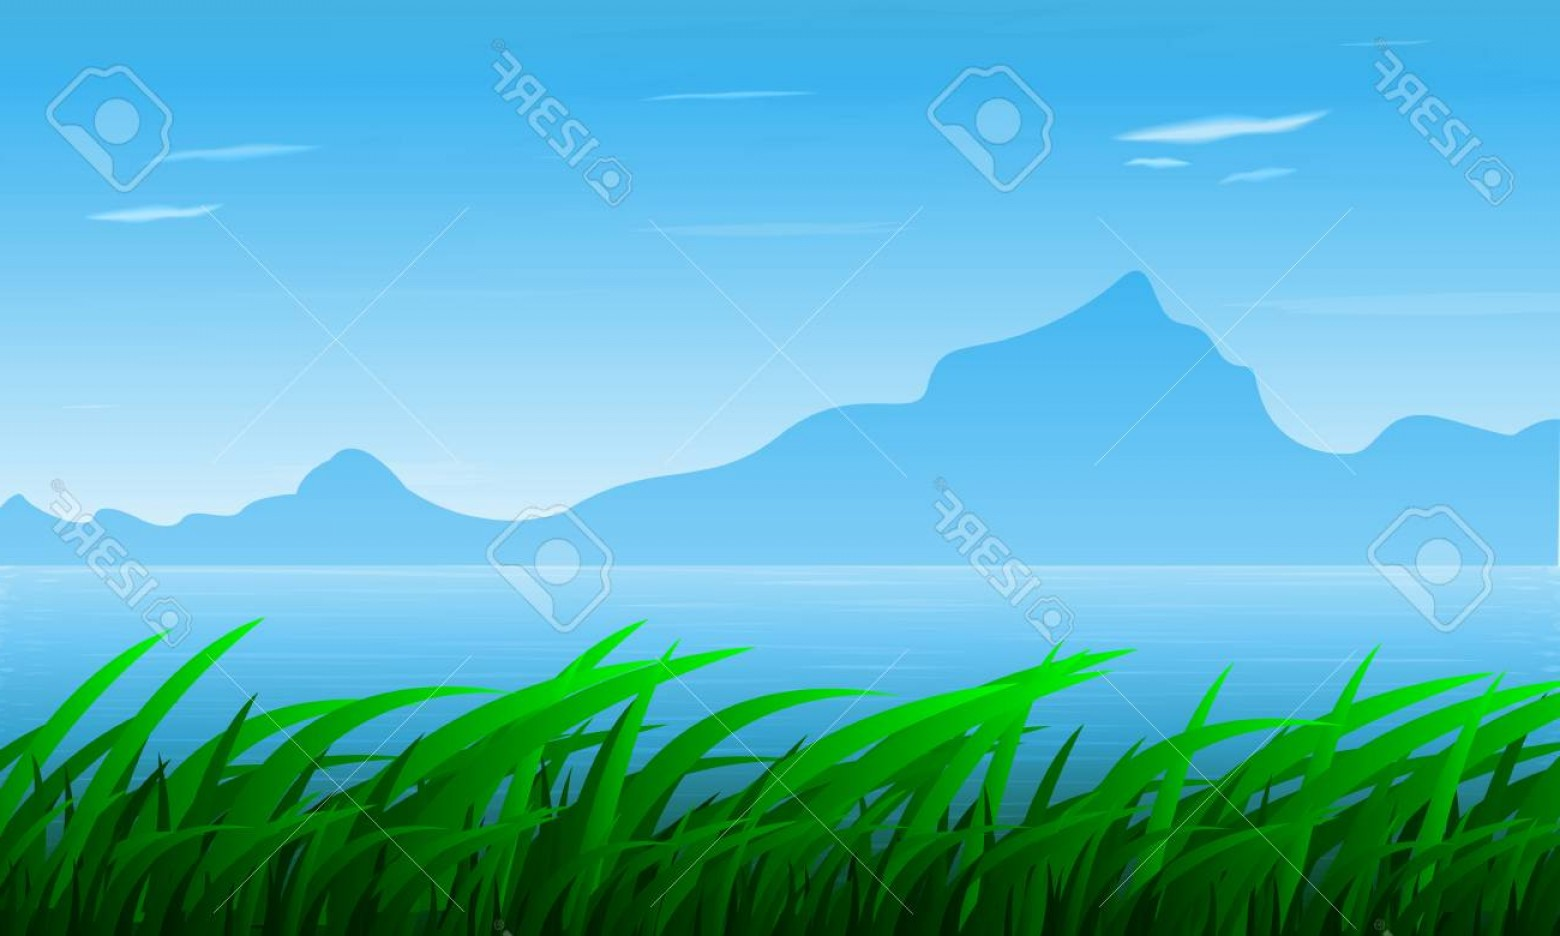 River Vector Art: Photostock Vector Landscape Of Grass On The Background Of The River And Mountains Vector Art Illustration